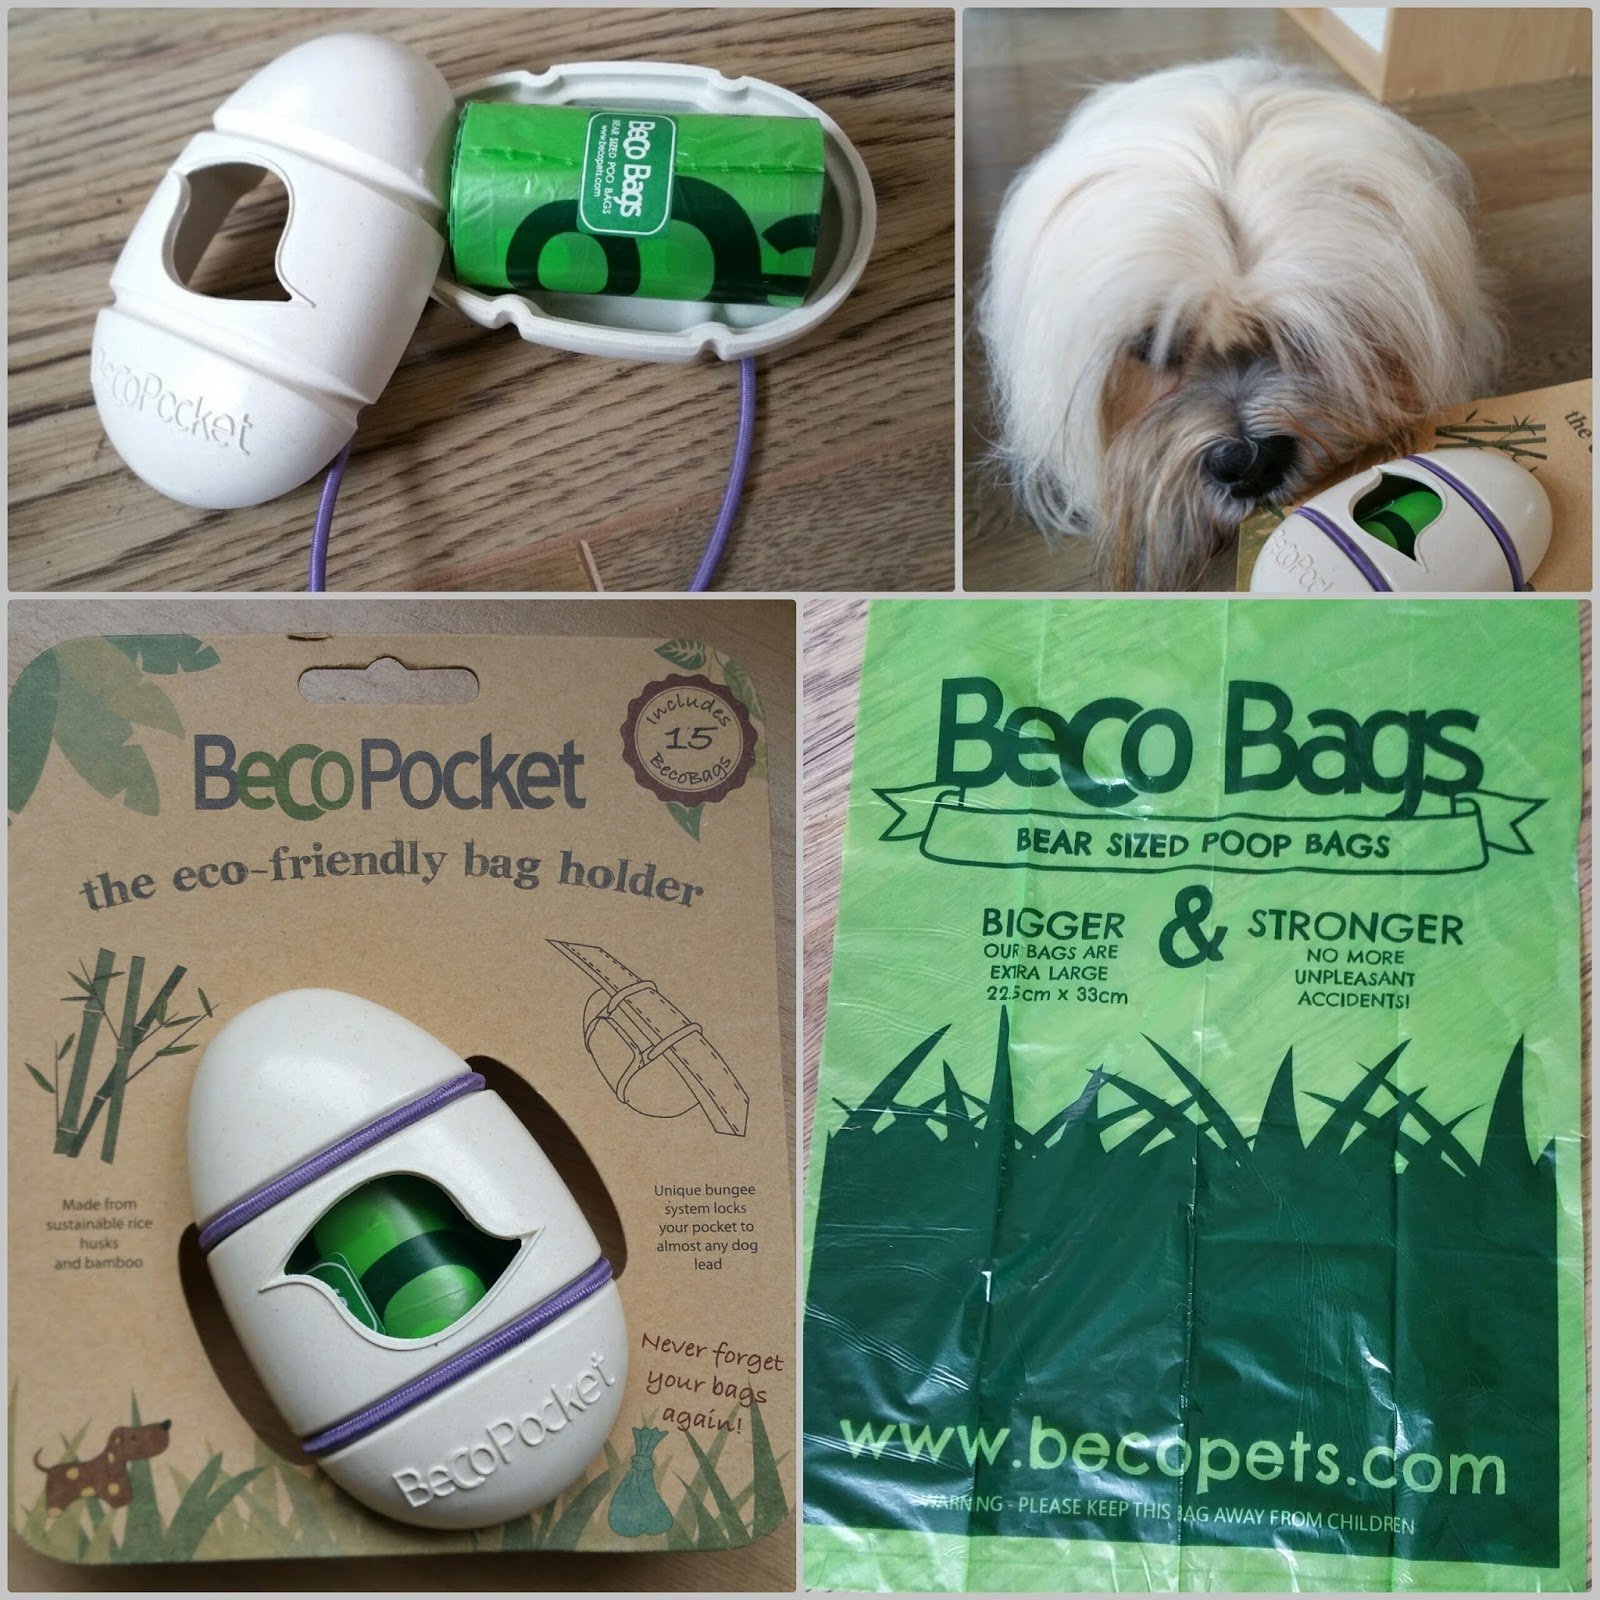 Amazing To Test Out The Beco Pocket A Uniquely Designed Poop Bag Holder That Comes With Starter Supply Of Bags We Were More Than Happy Oblige